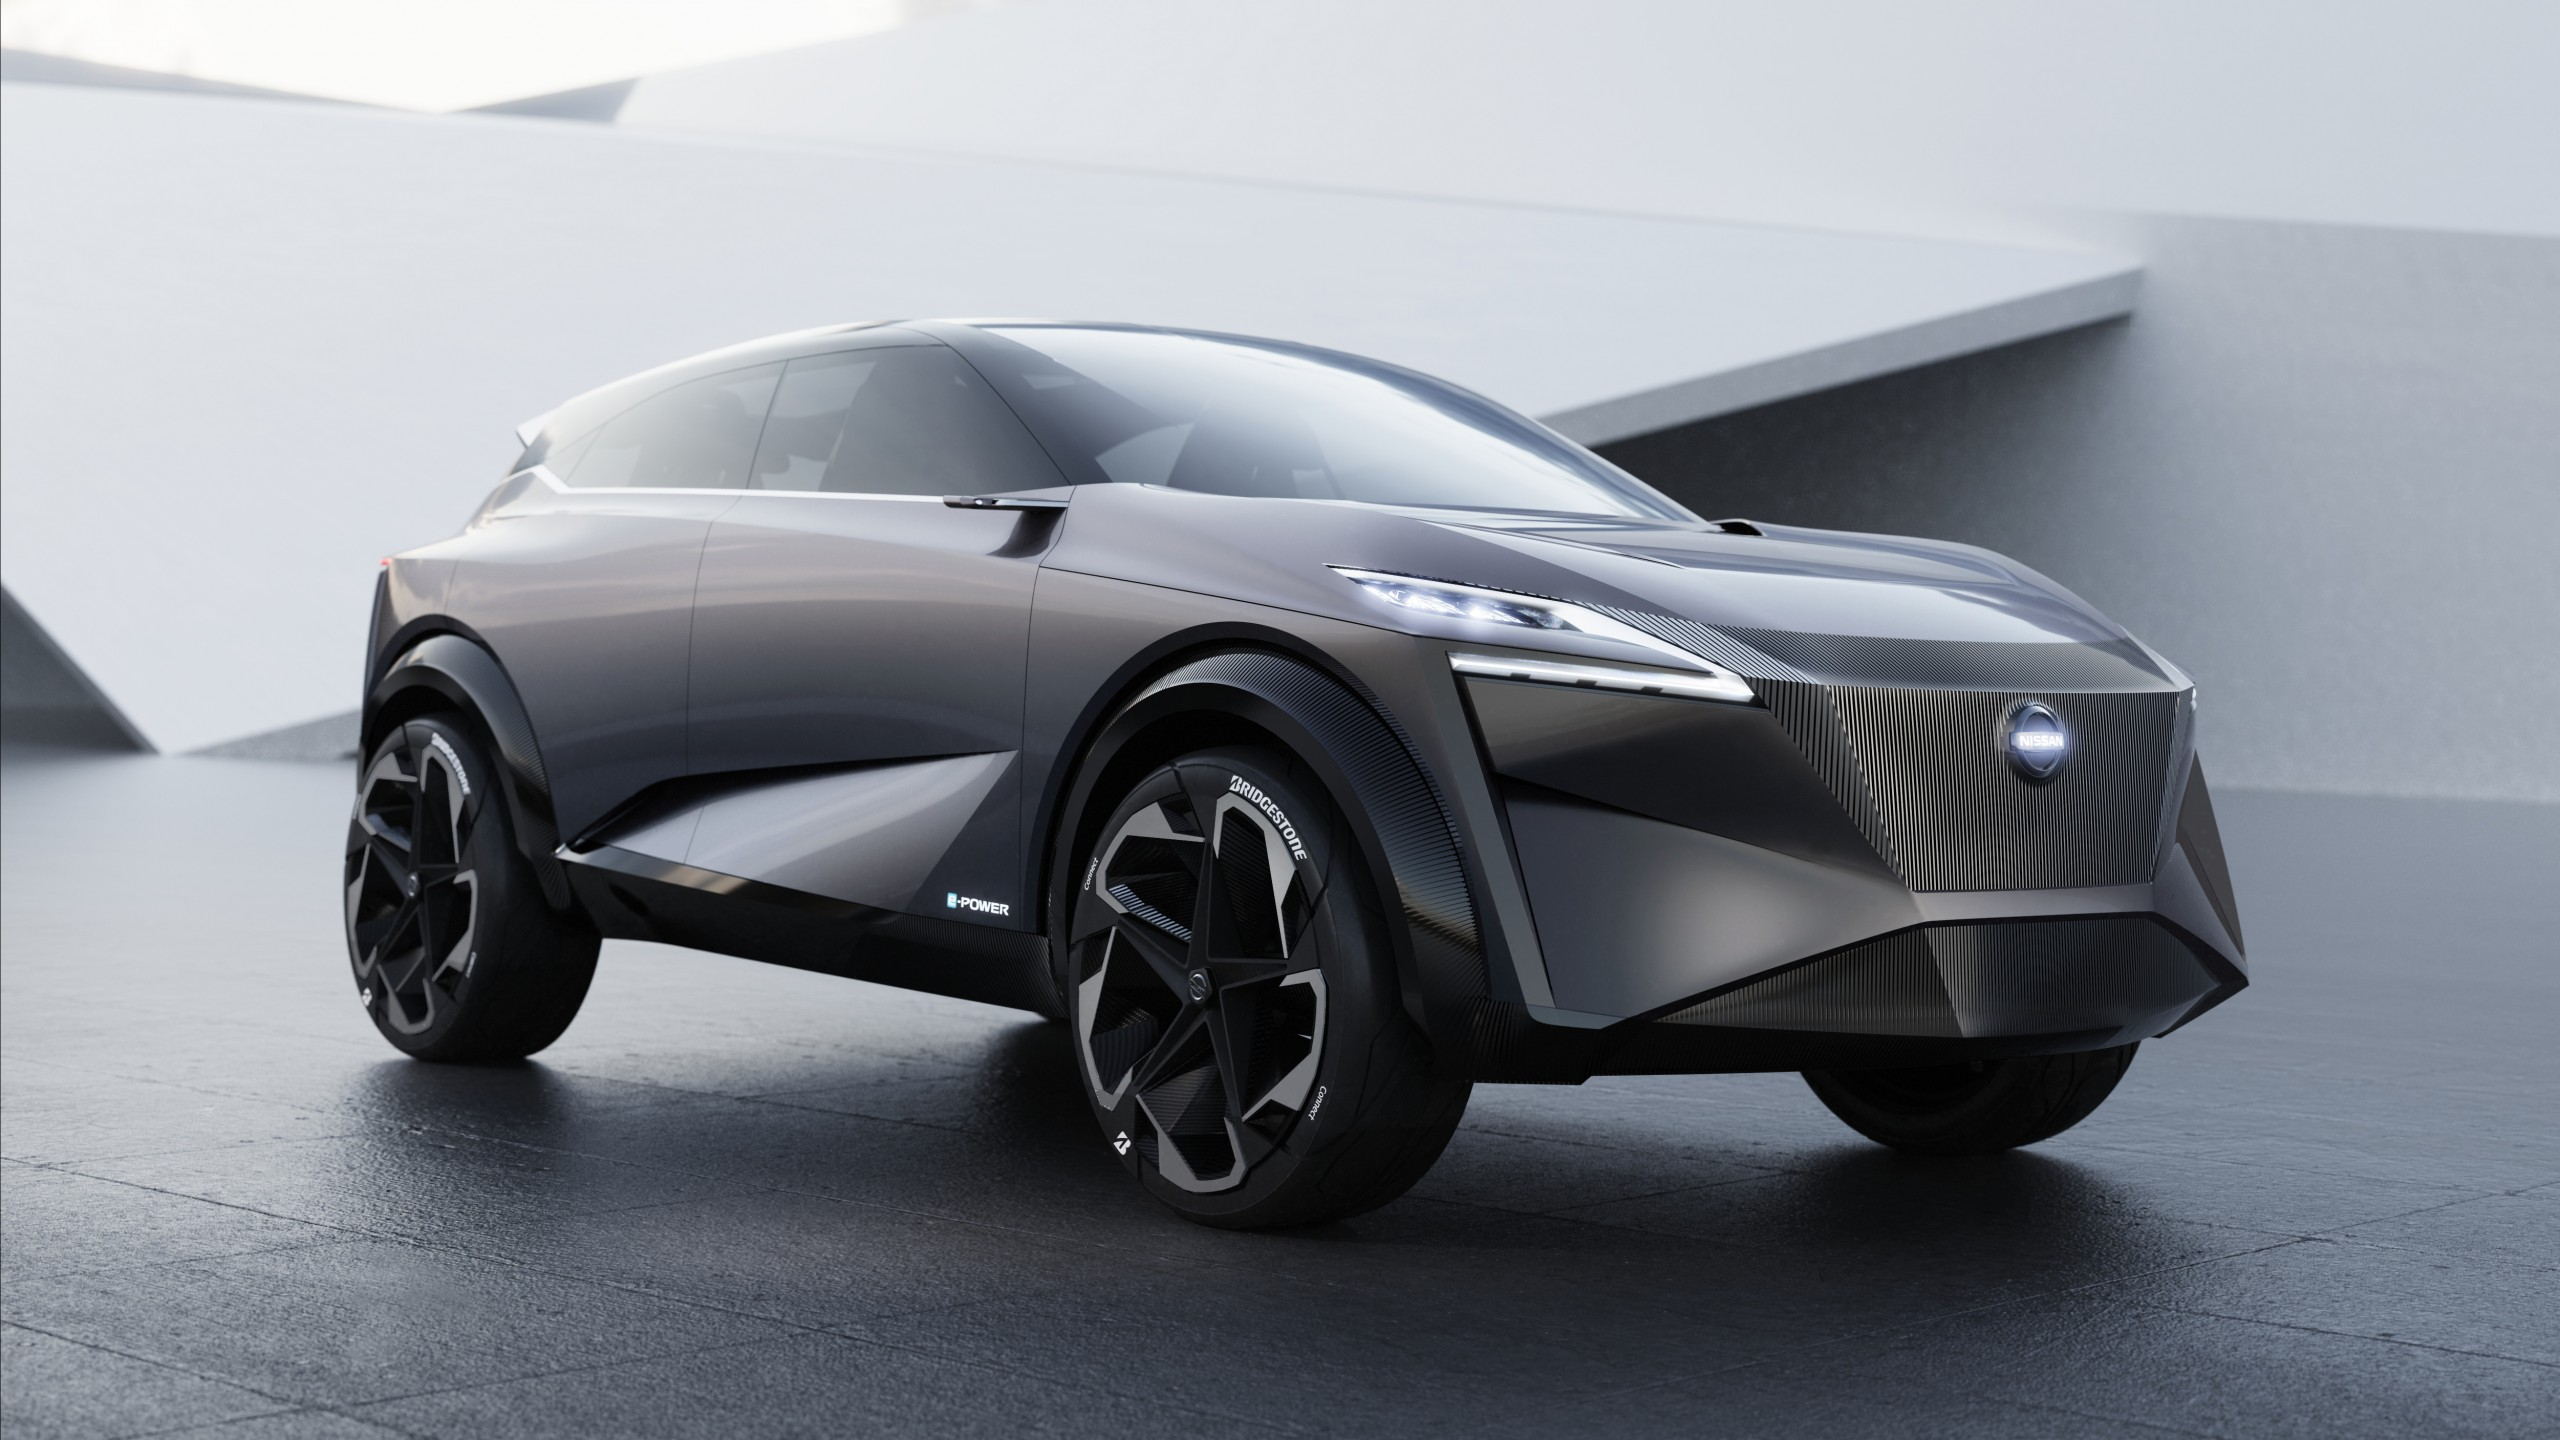 Wallpaper Nissan Imq Electric Cars Geneva Motor Show